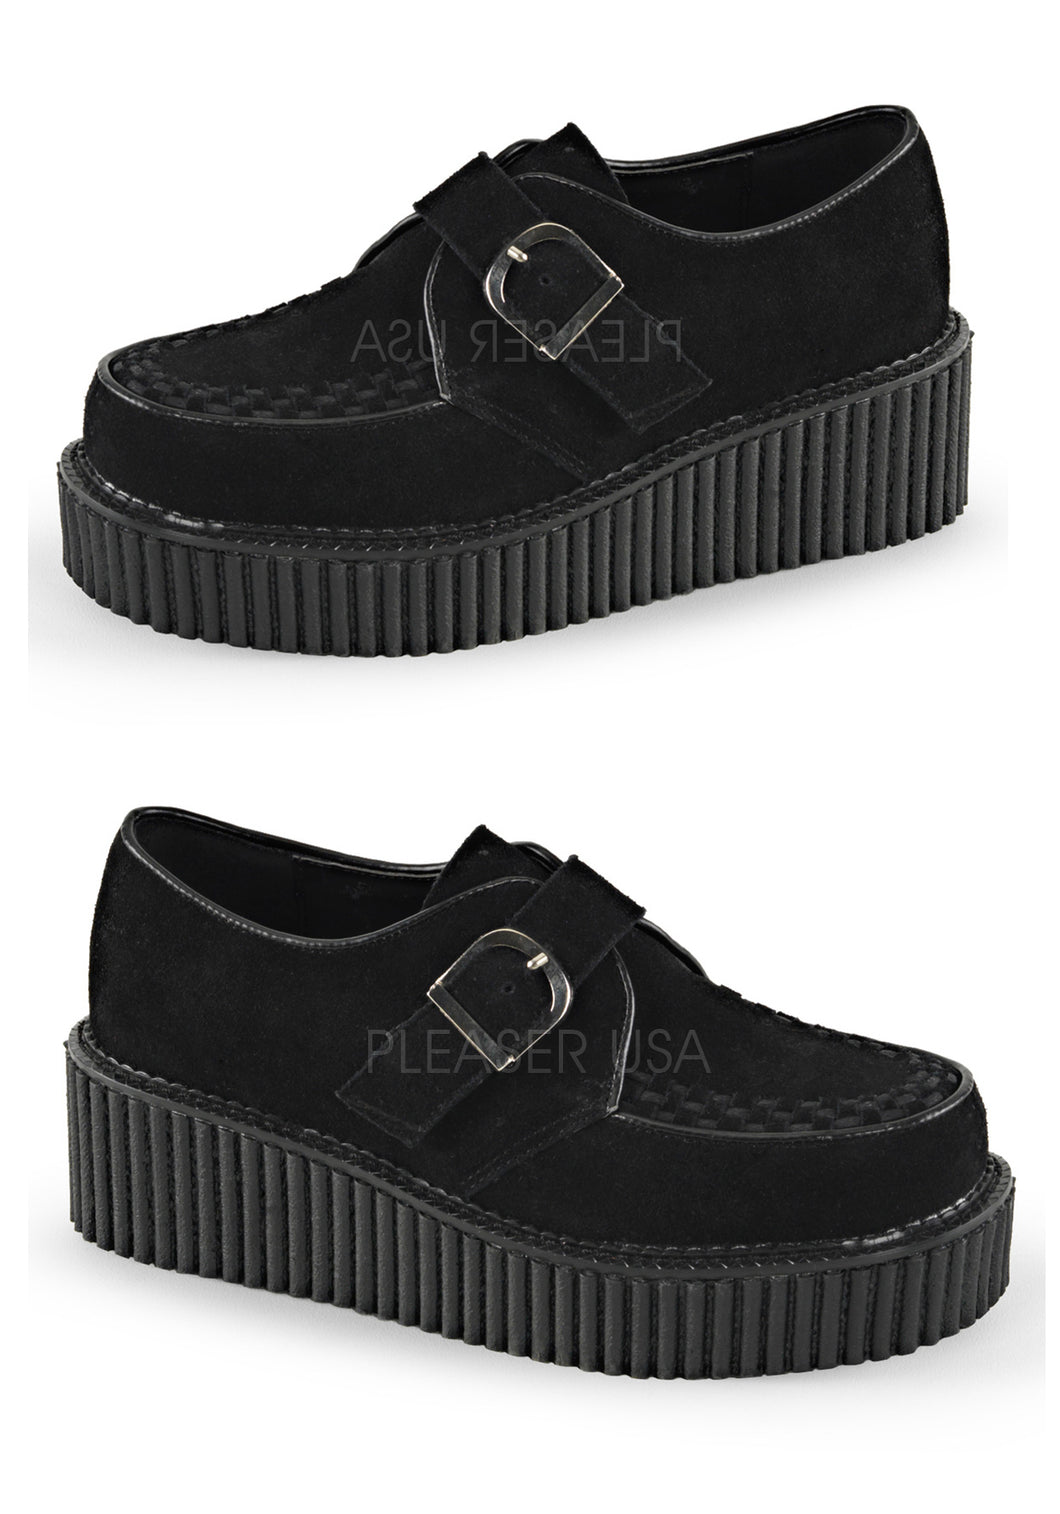 Black Vegan Suede Creeper Shoes